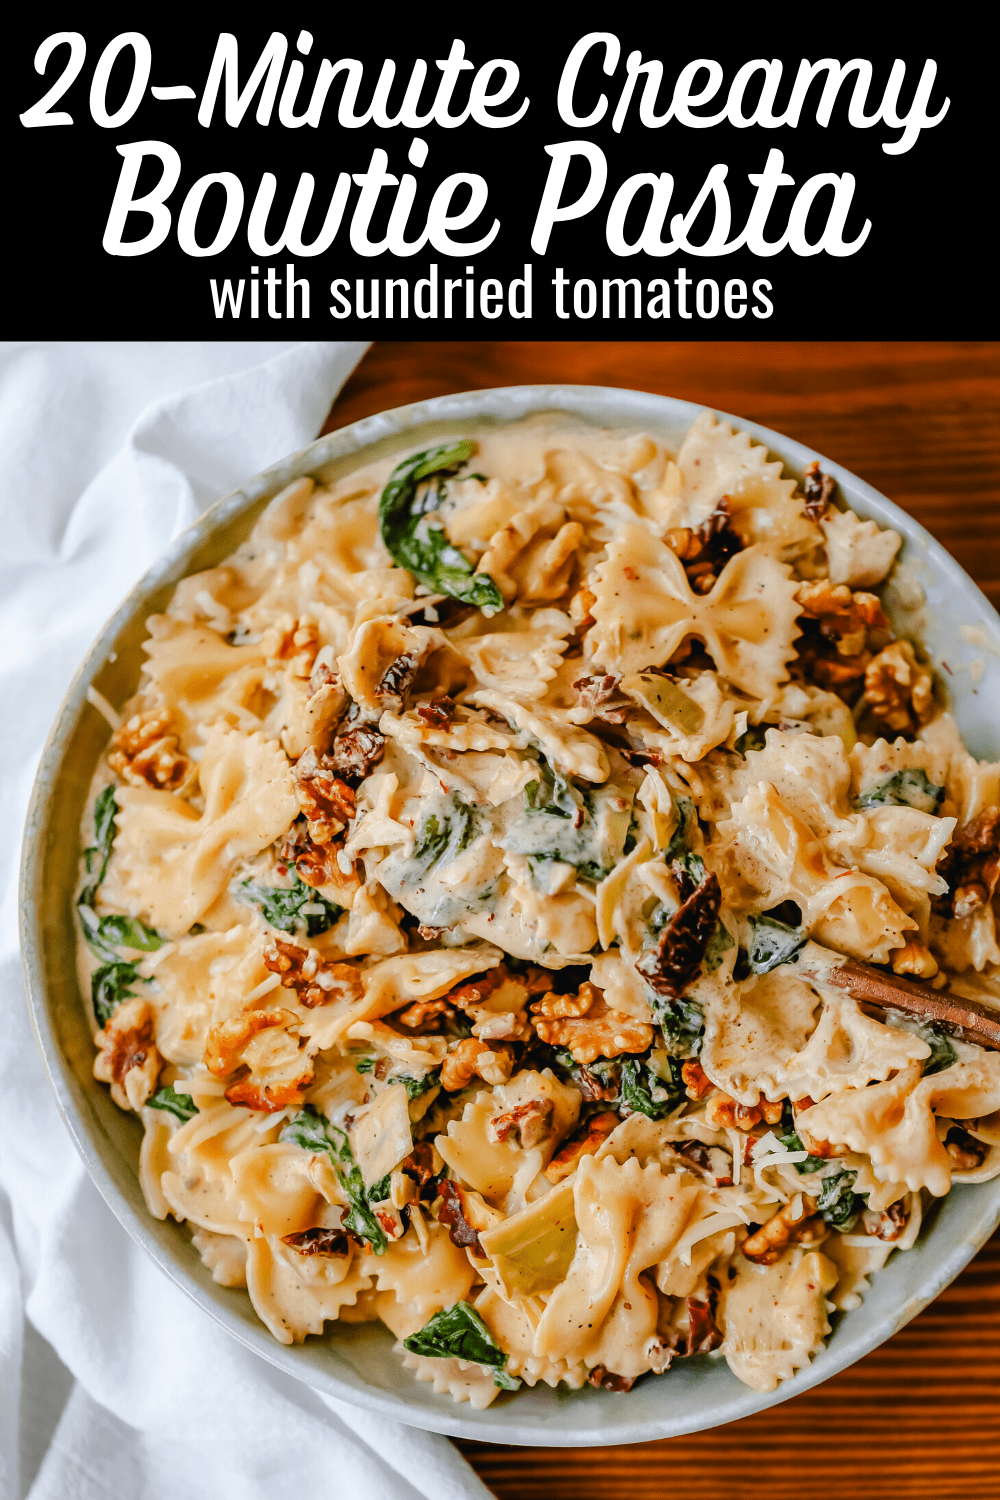 Creamy Bowtie Pasta with Sundried Tomatoes Bowtie Pasta tossed with a garlic sundried tomato cream sauce with artichoke hearts and parmesan cheese and crunchy toasted walnuts. A quick 20-minute weeknight meal.#pasta #dinner